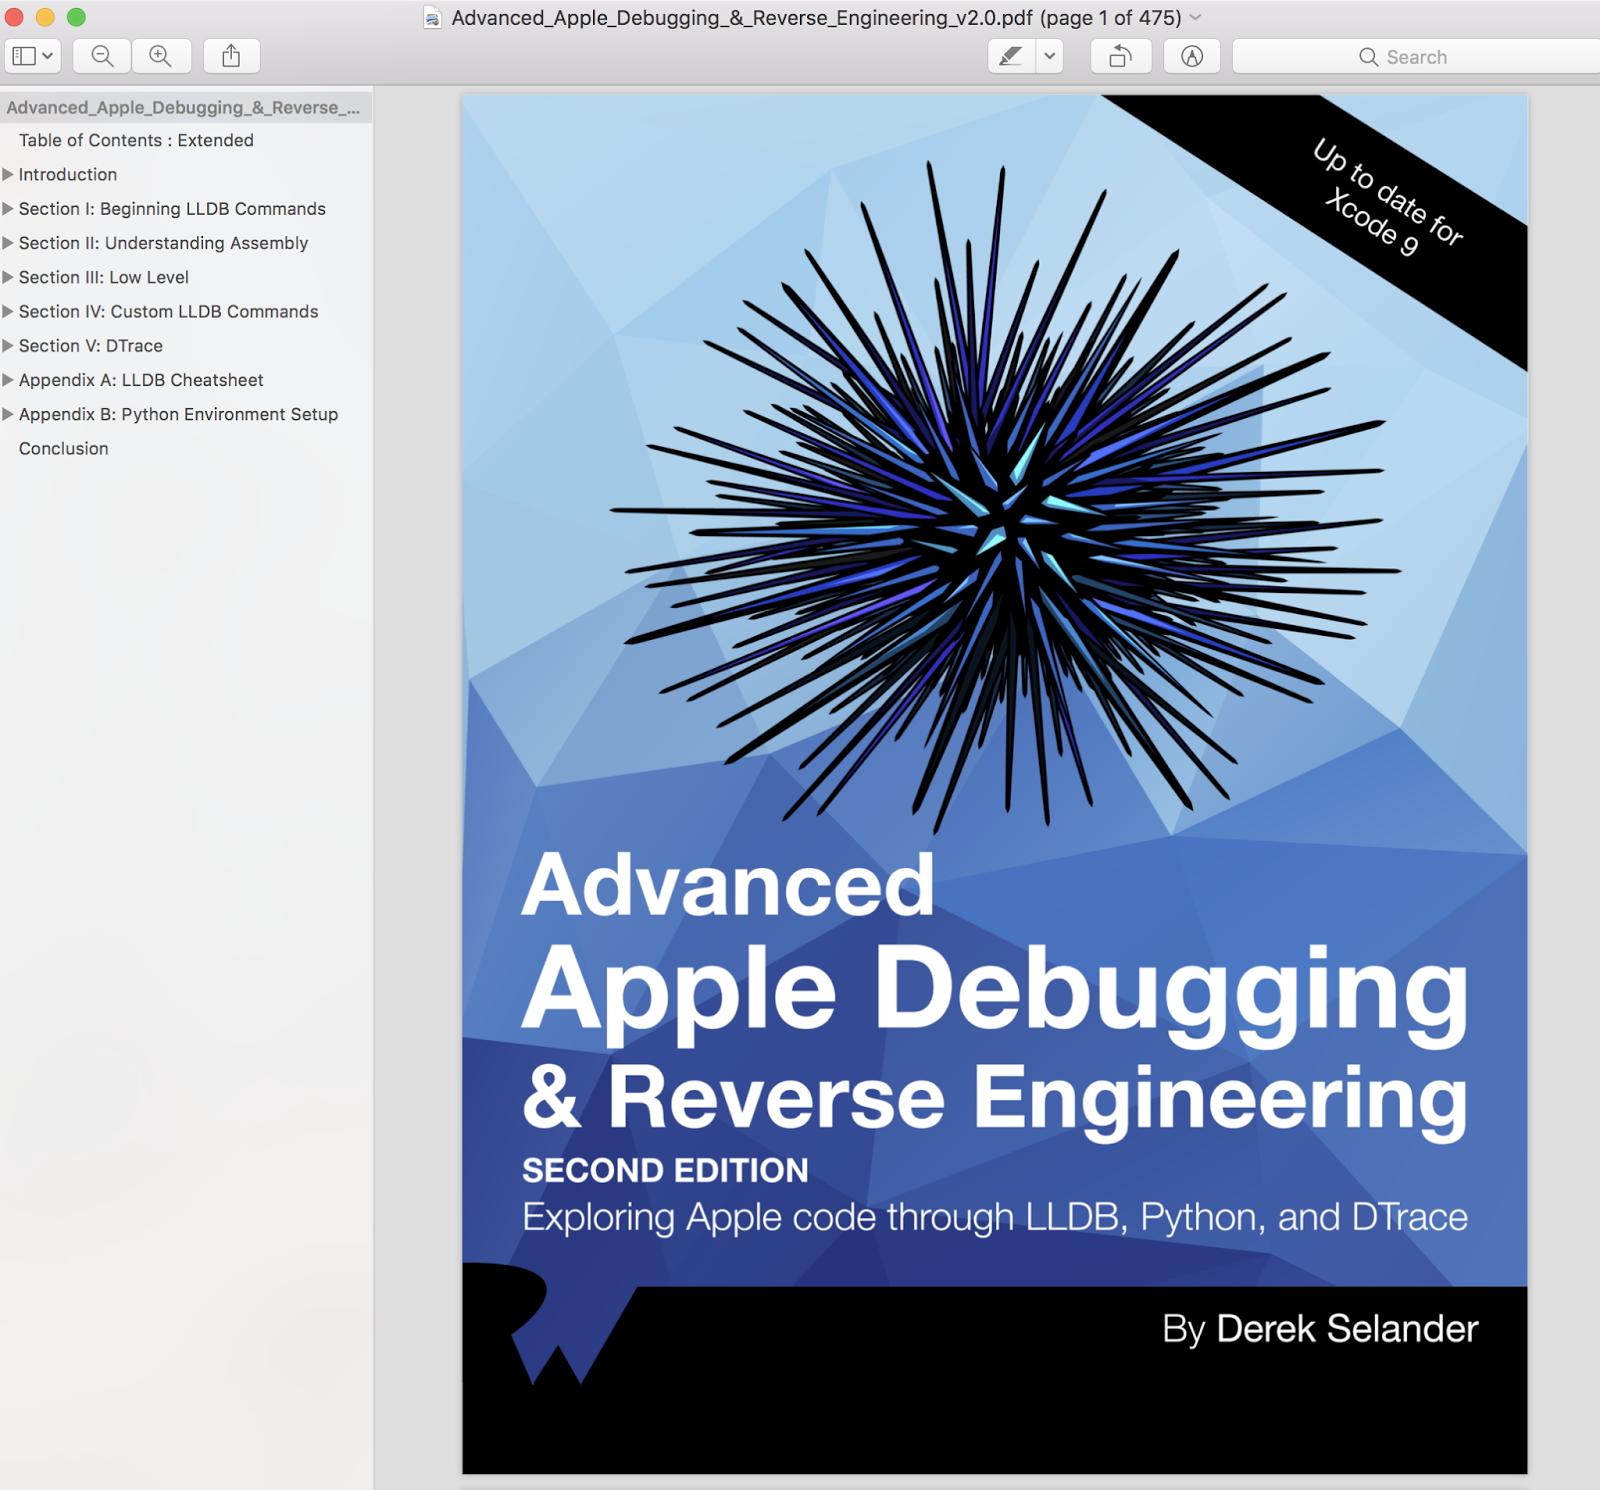 Download advanced apple debugging reverse engineering pdf epub download advanced apple debugging reverse engineering pdf epub full souce code update xcode baditri Image collections